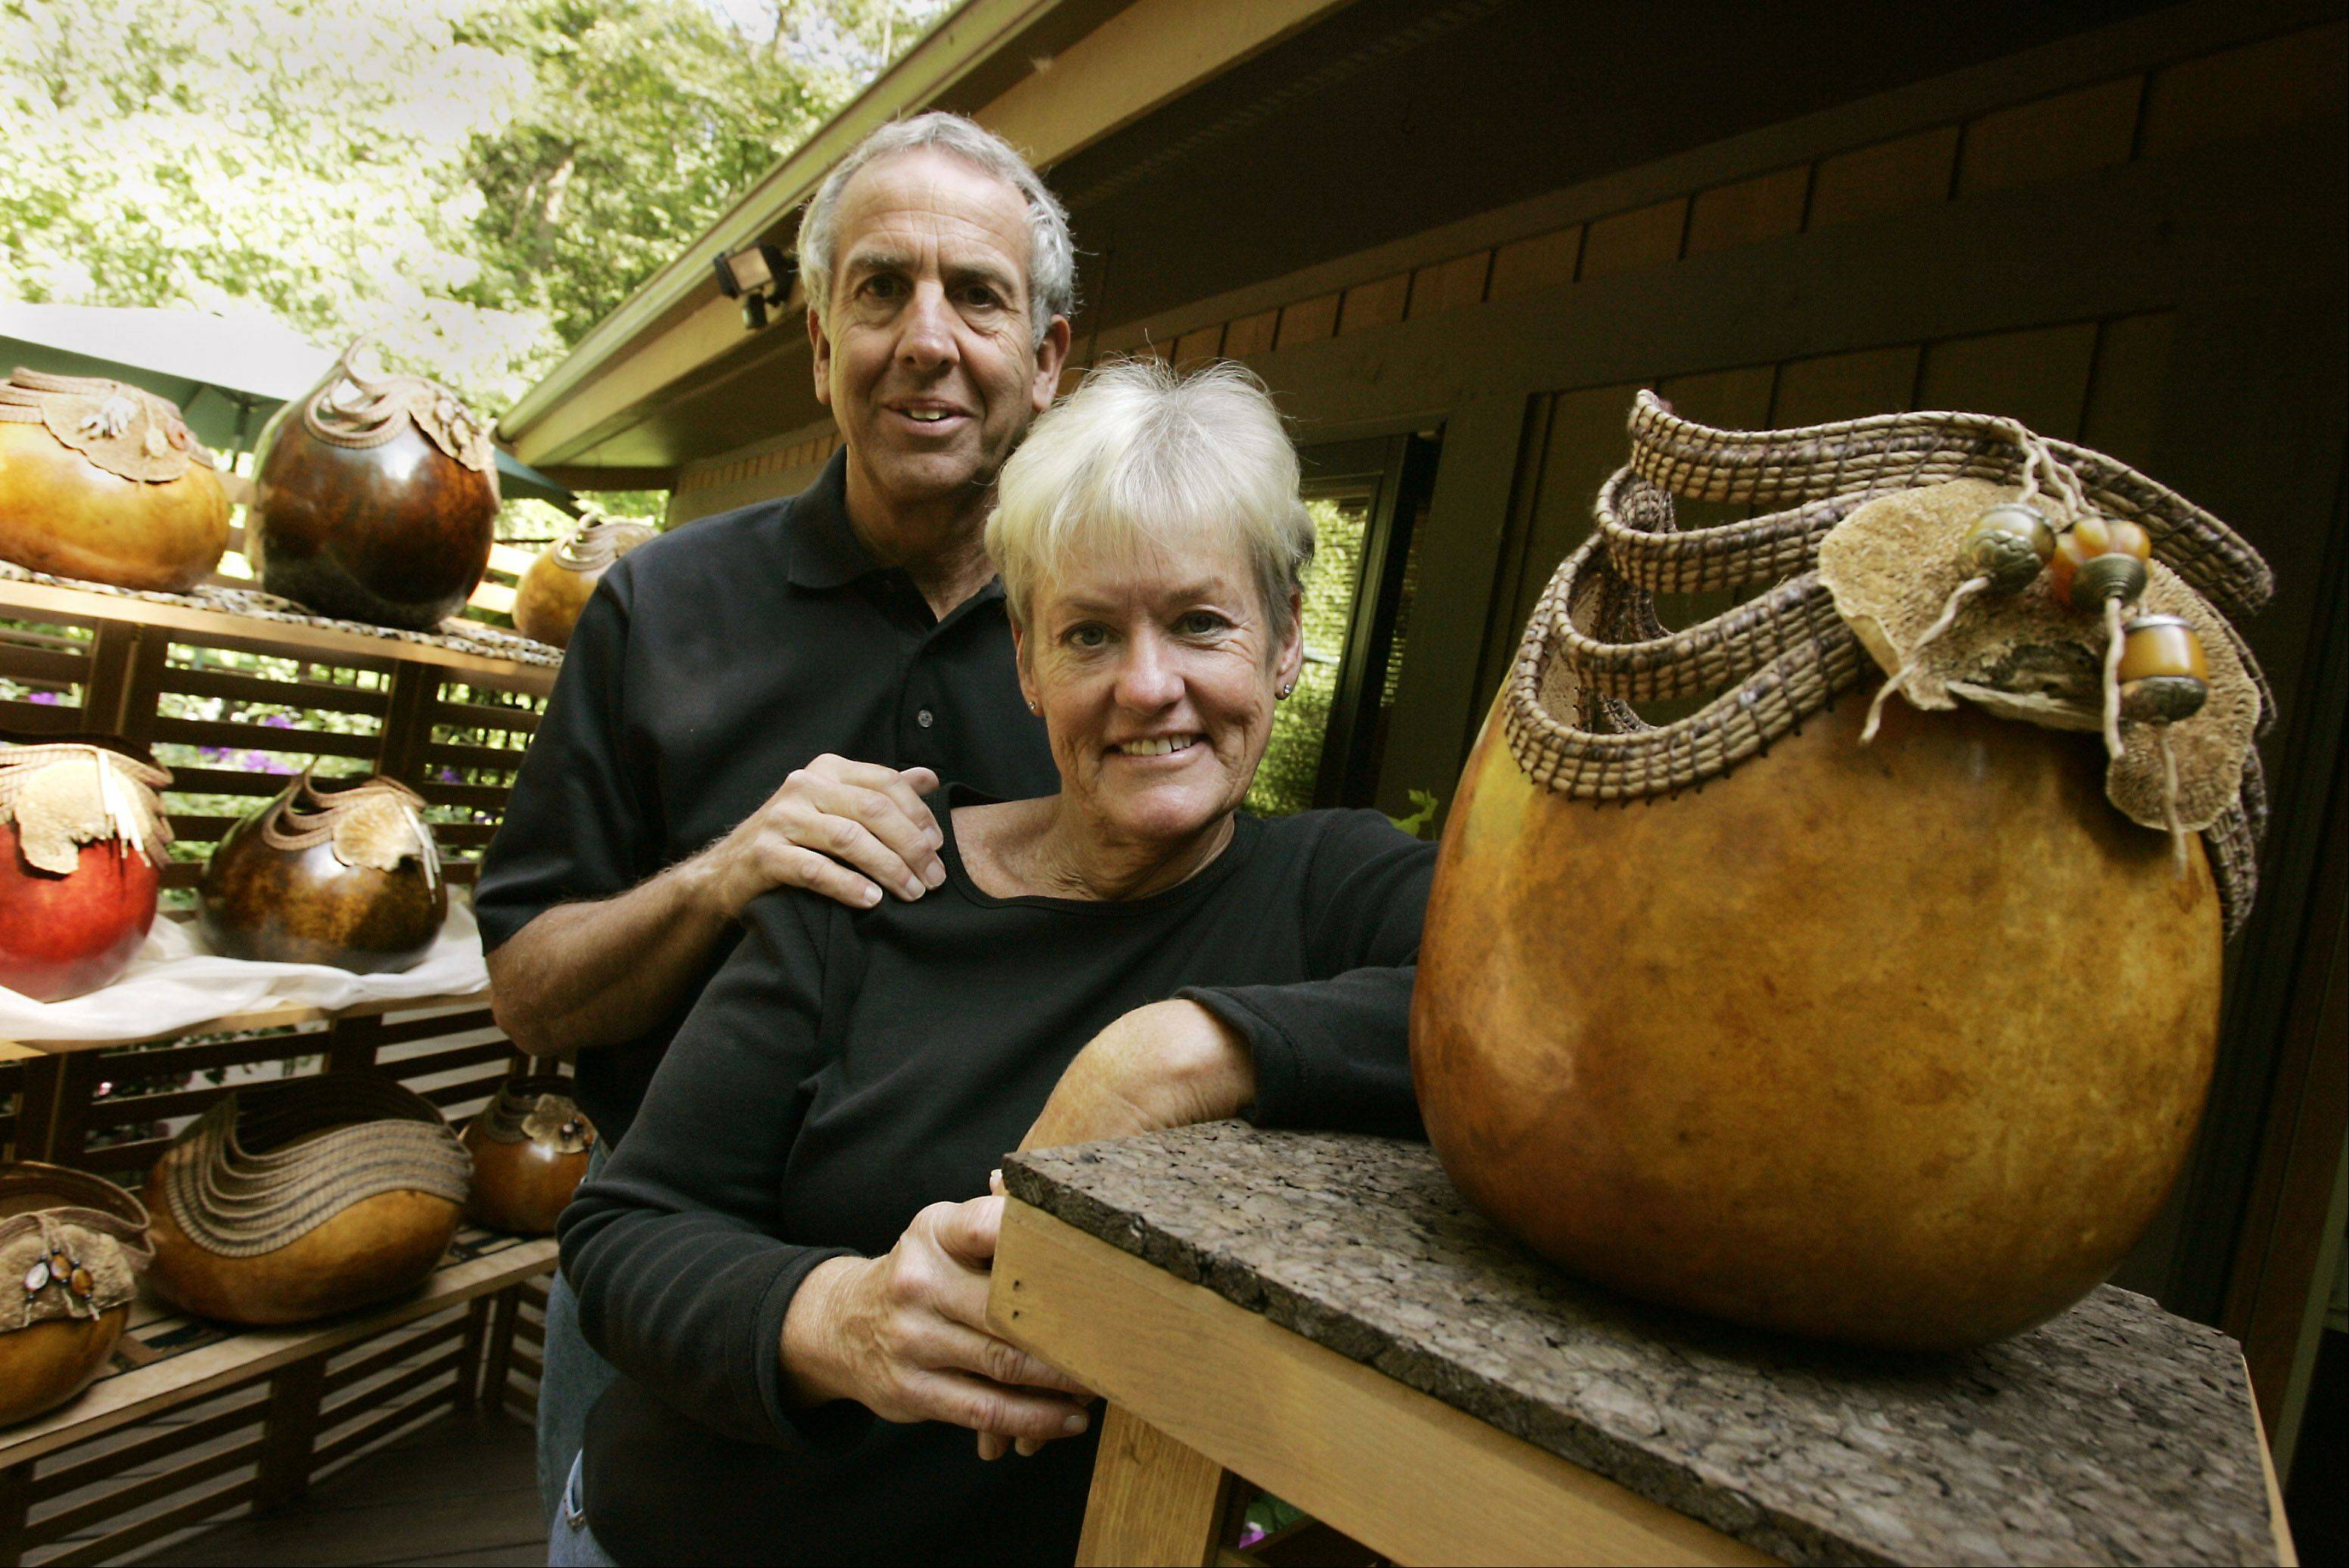 Rosie and Dave Claus of Naperville will bring their unique gourd creations to the Naperville Art League's annual Riverwalk Fine Art Fair. Dave prepares the surfaces of the gourds and does pyro-engraving to burn in designs, while Rosie does the weaving and coiling.